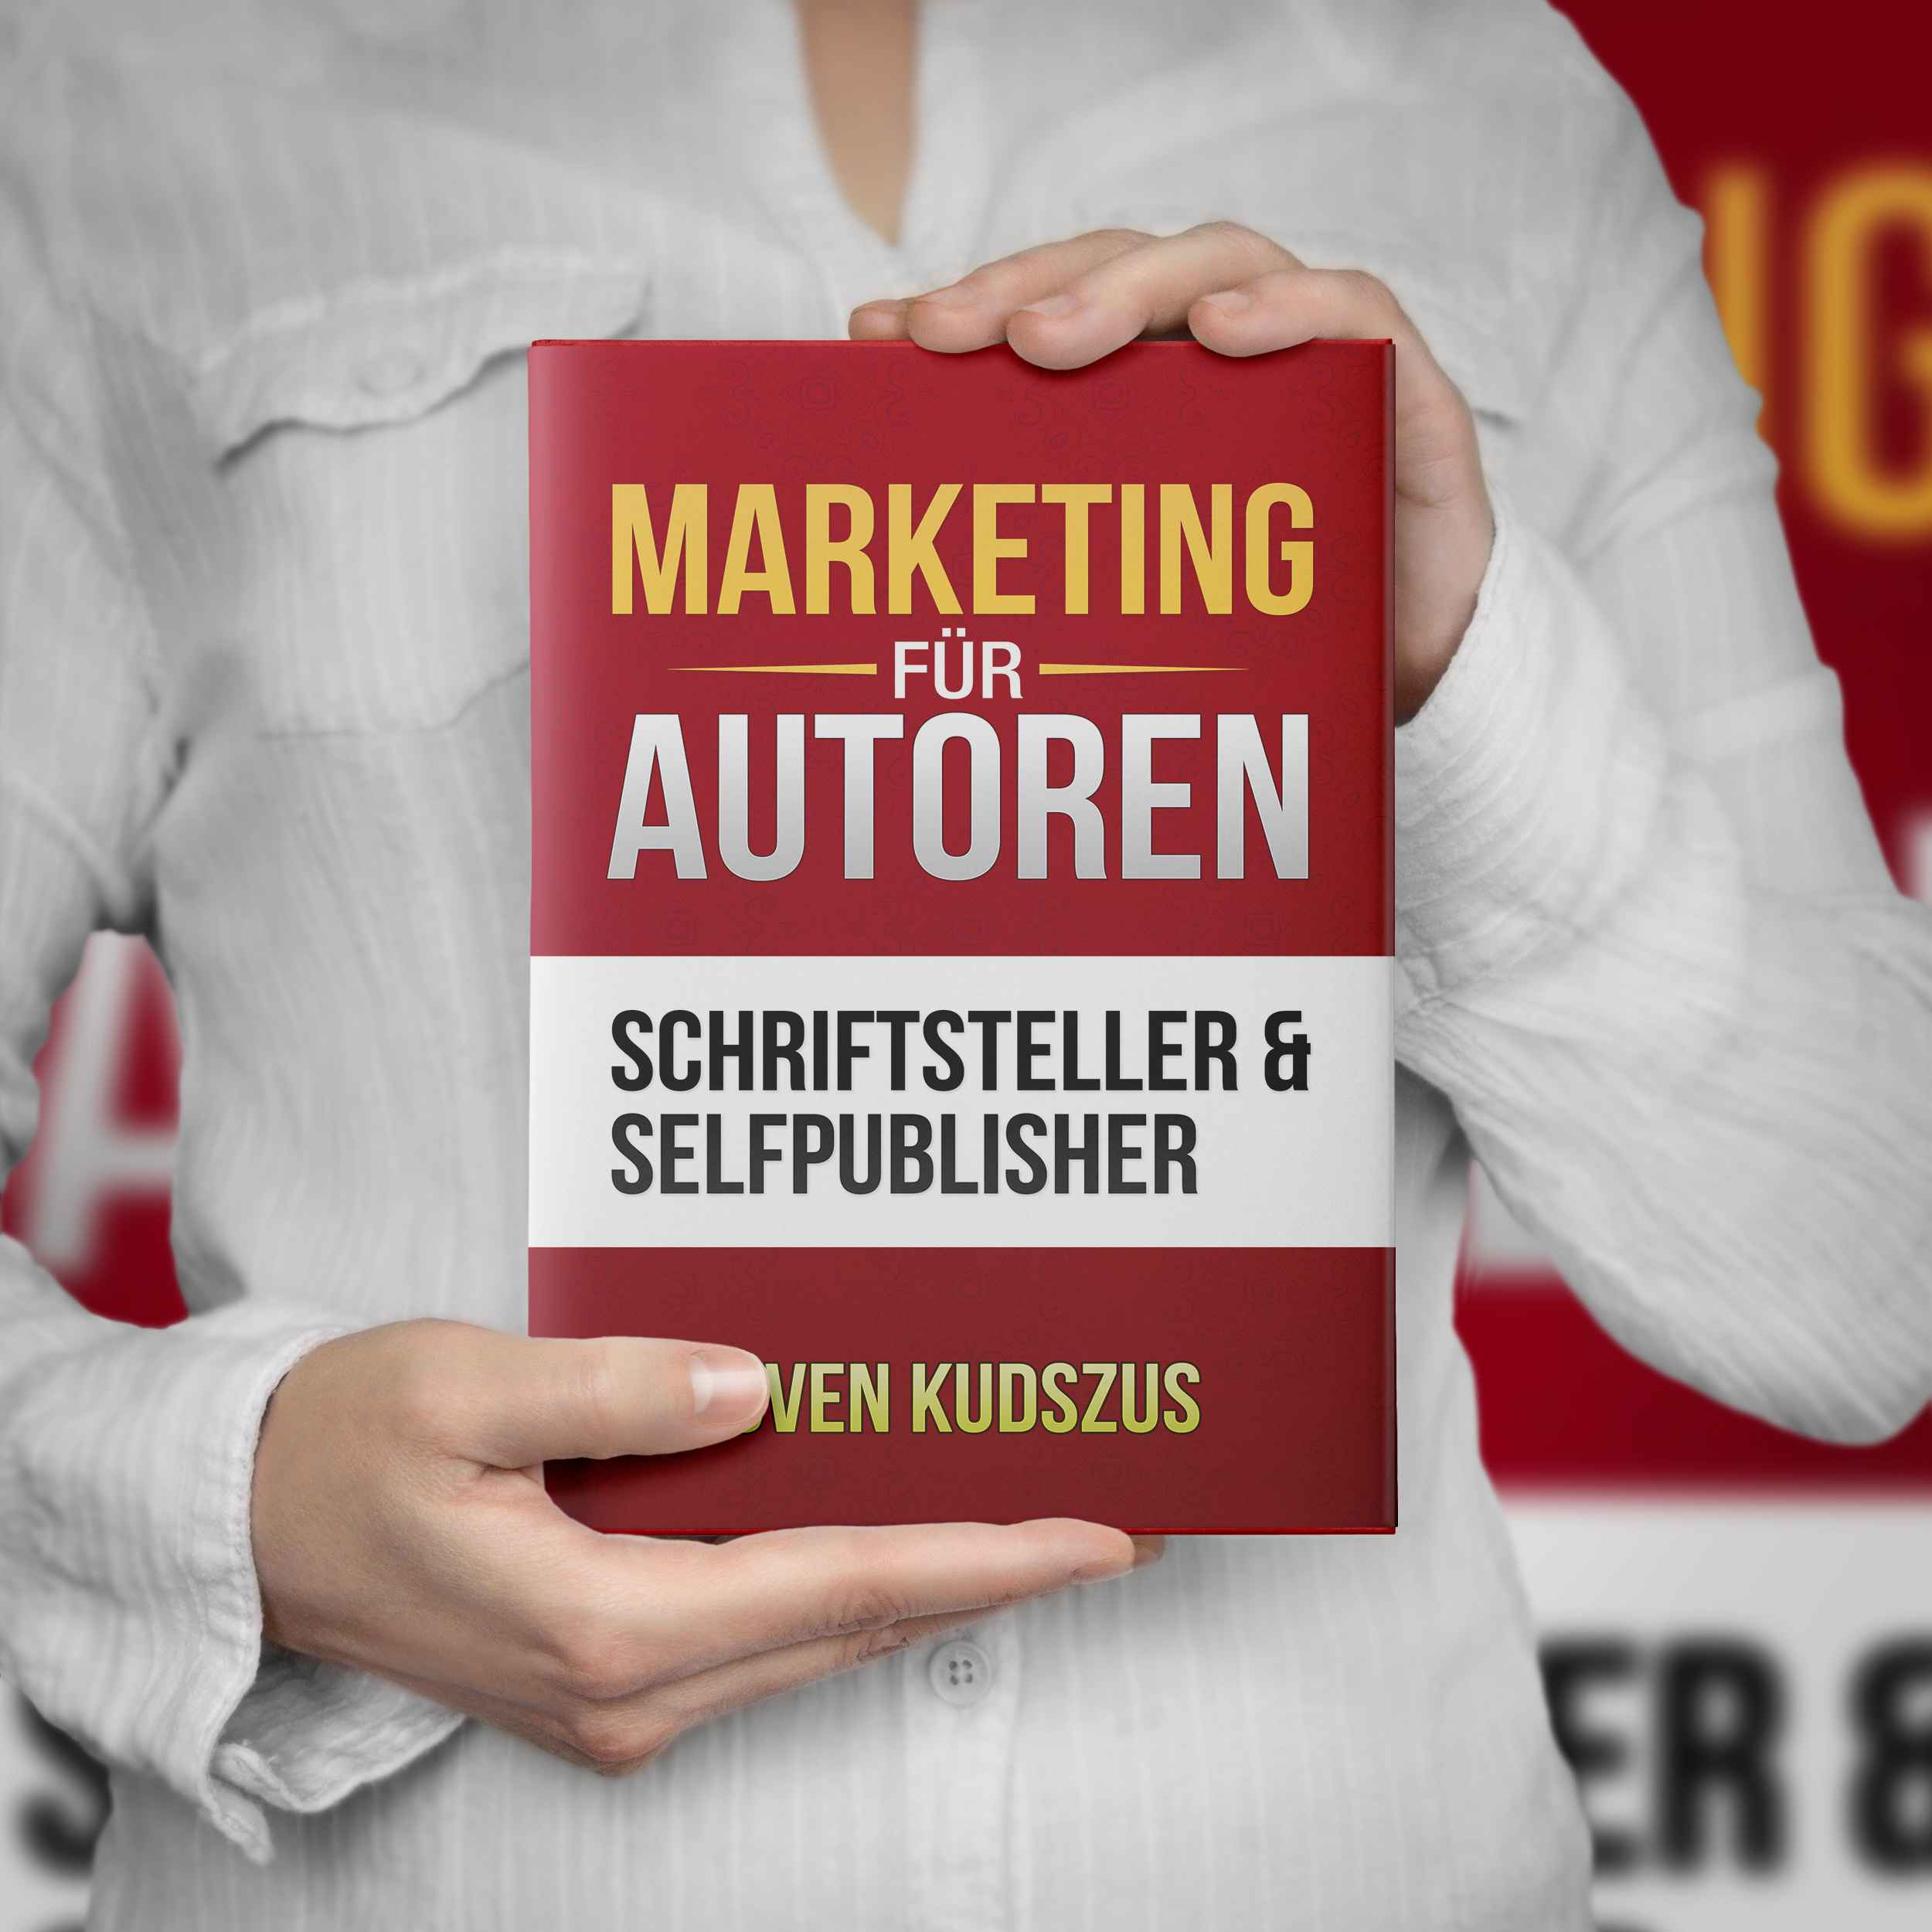 Email Marketing für Autoren